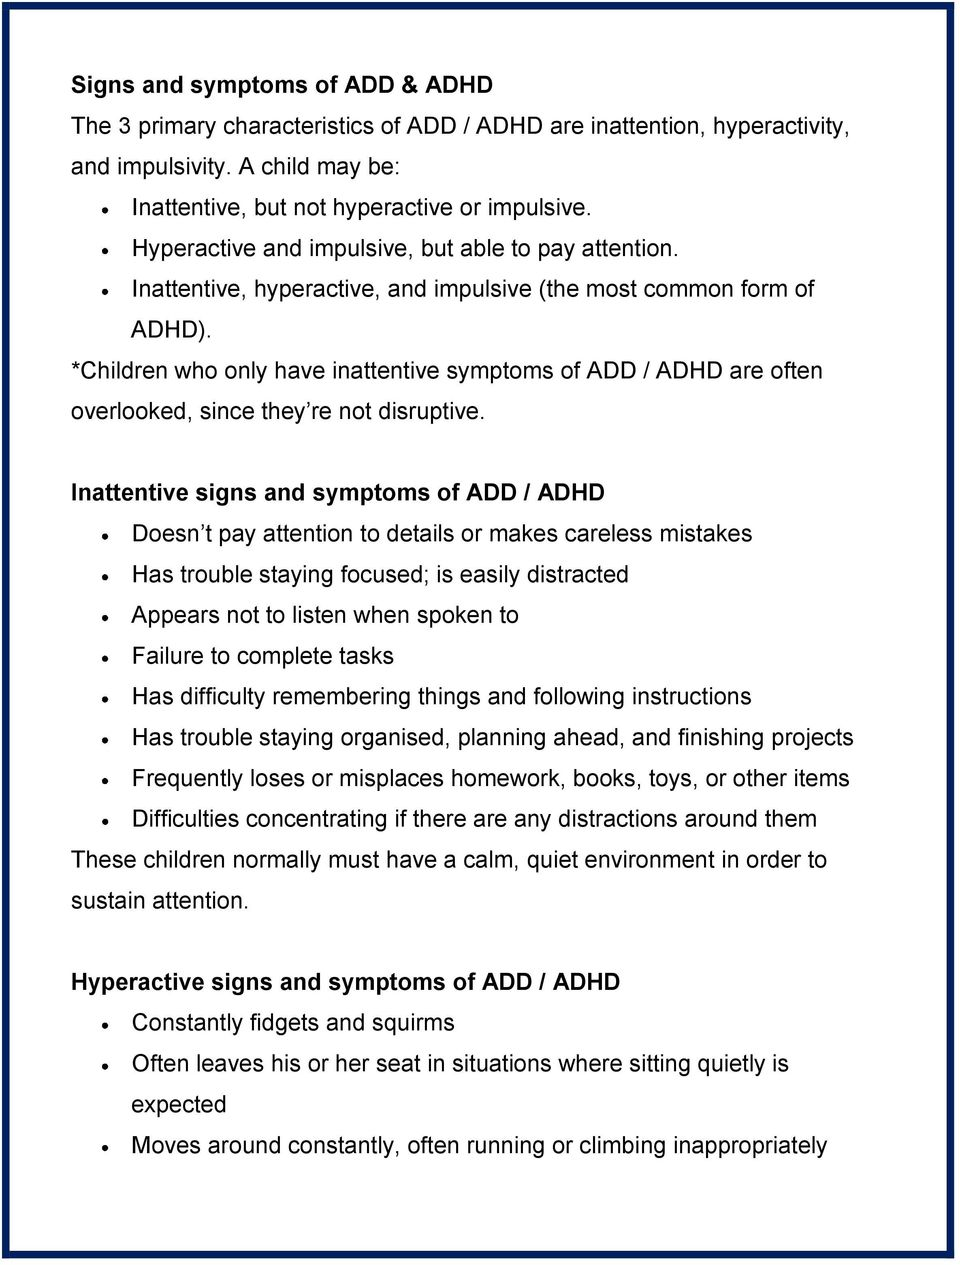 *Children who only have inattentive symptoms of ADD / ADHD are often overlooked, since they re not disruptive.